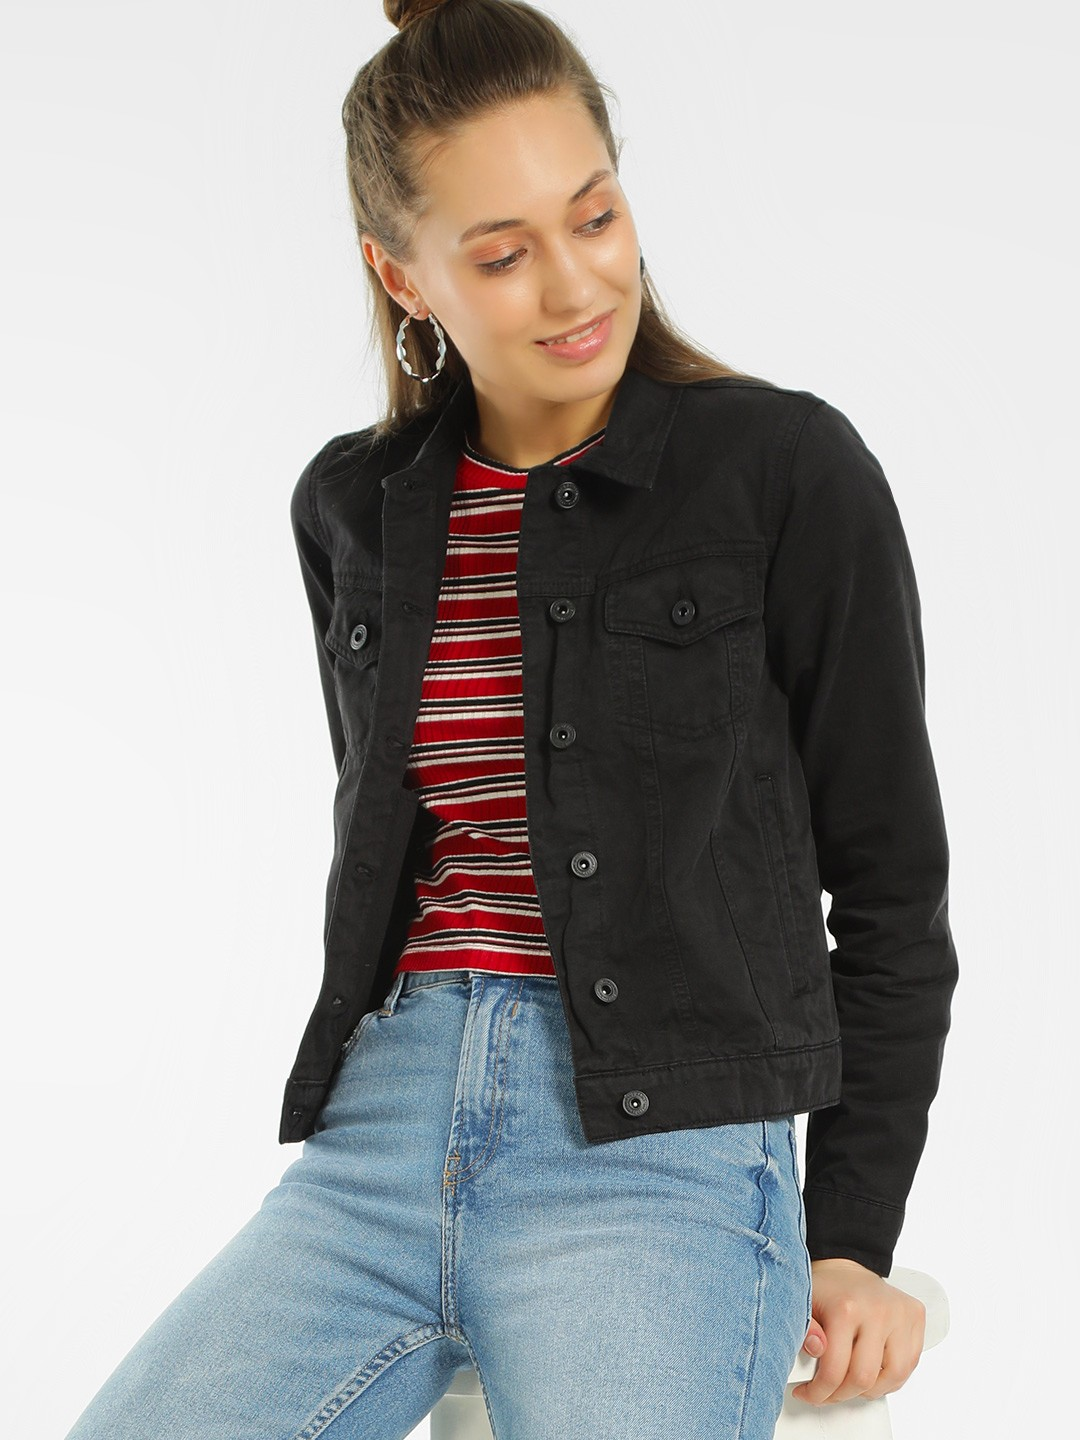 Blue Saint Black Basic Crop Denim Jacket 1